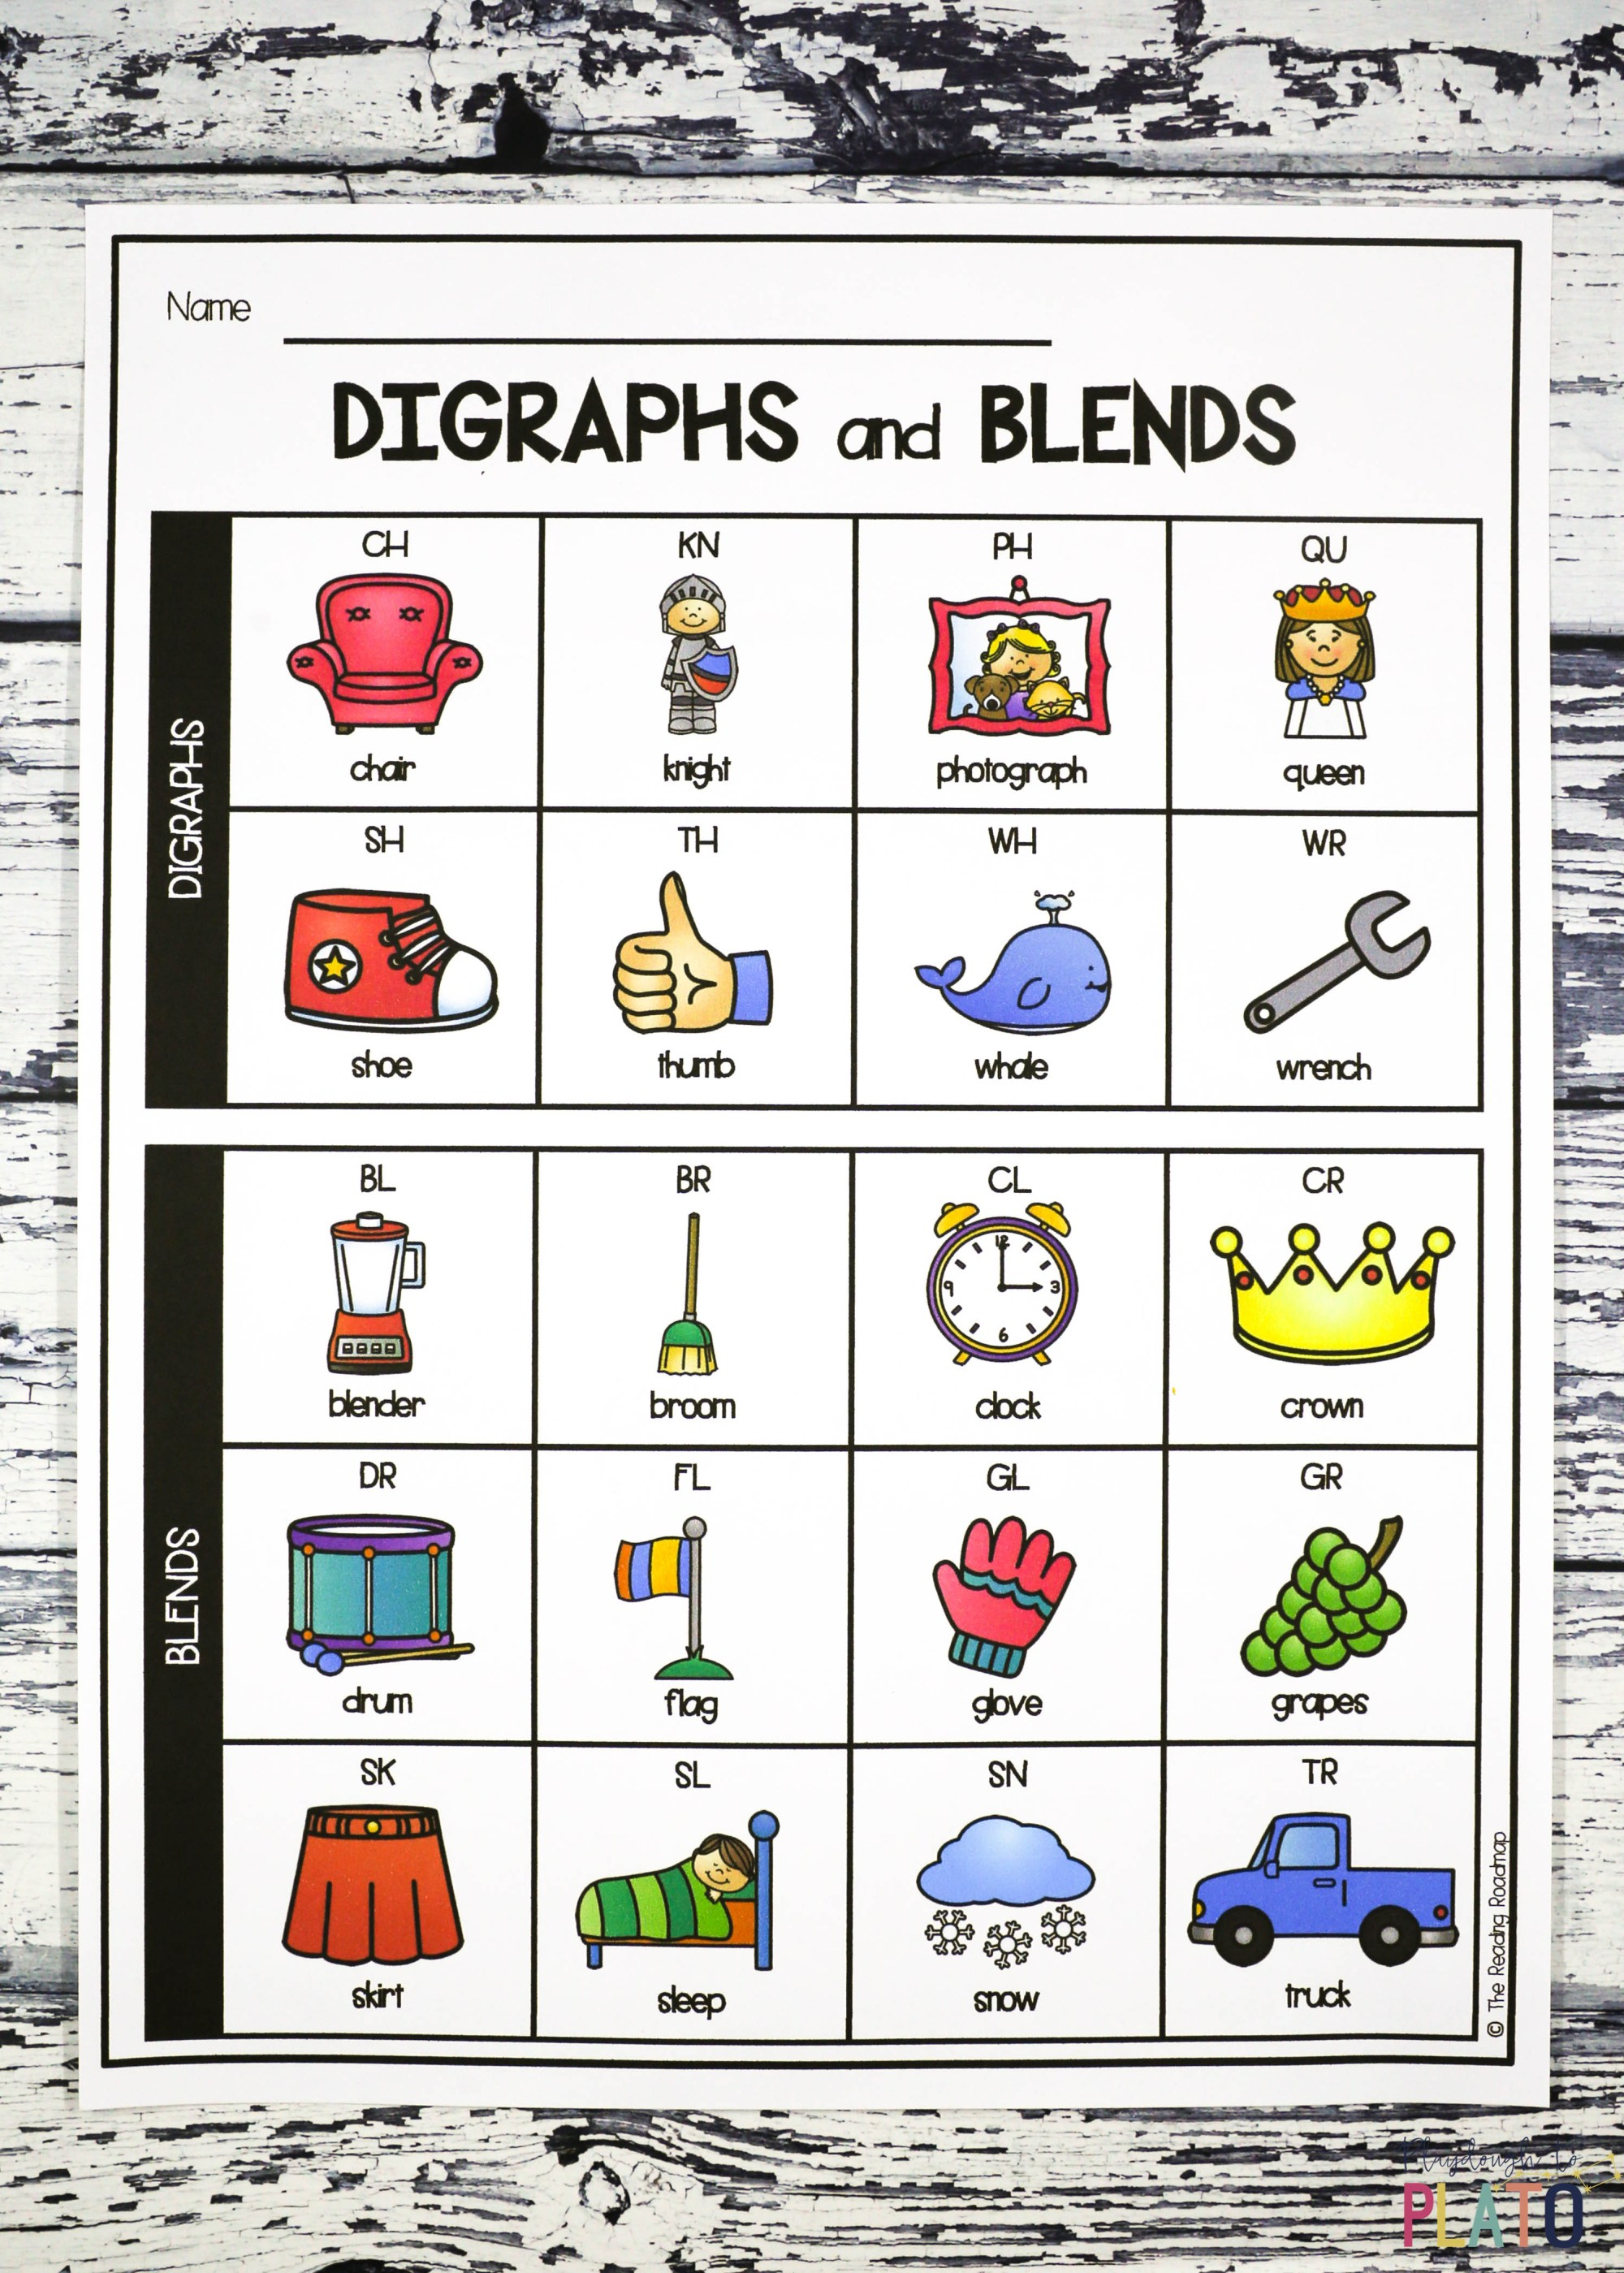 hight resolution of Digraph and Blend Chart - Playdough To Plato